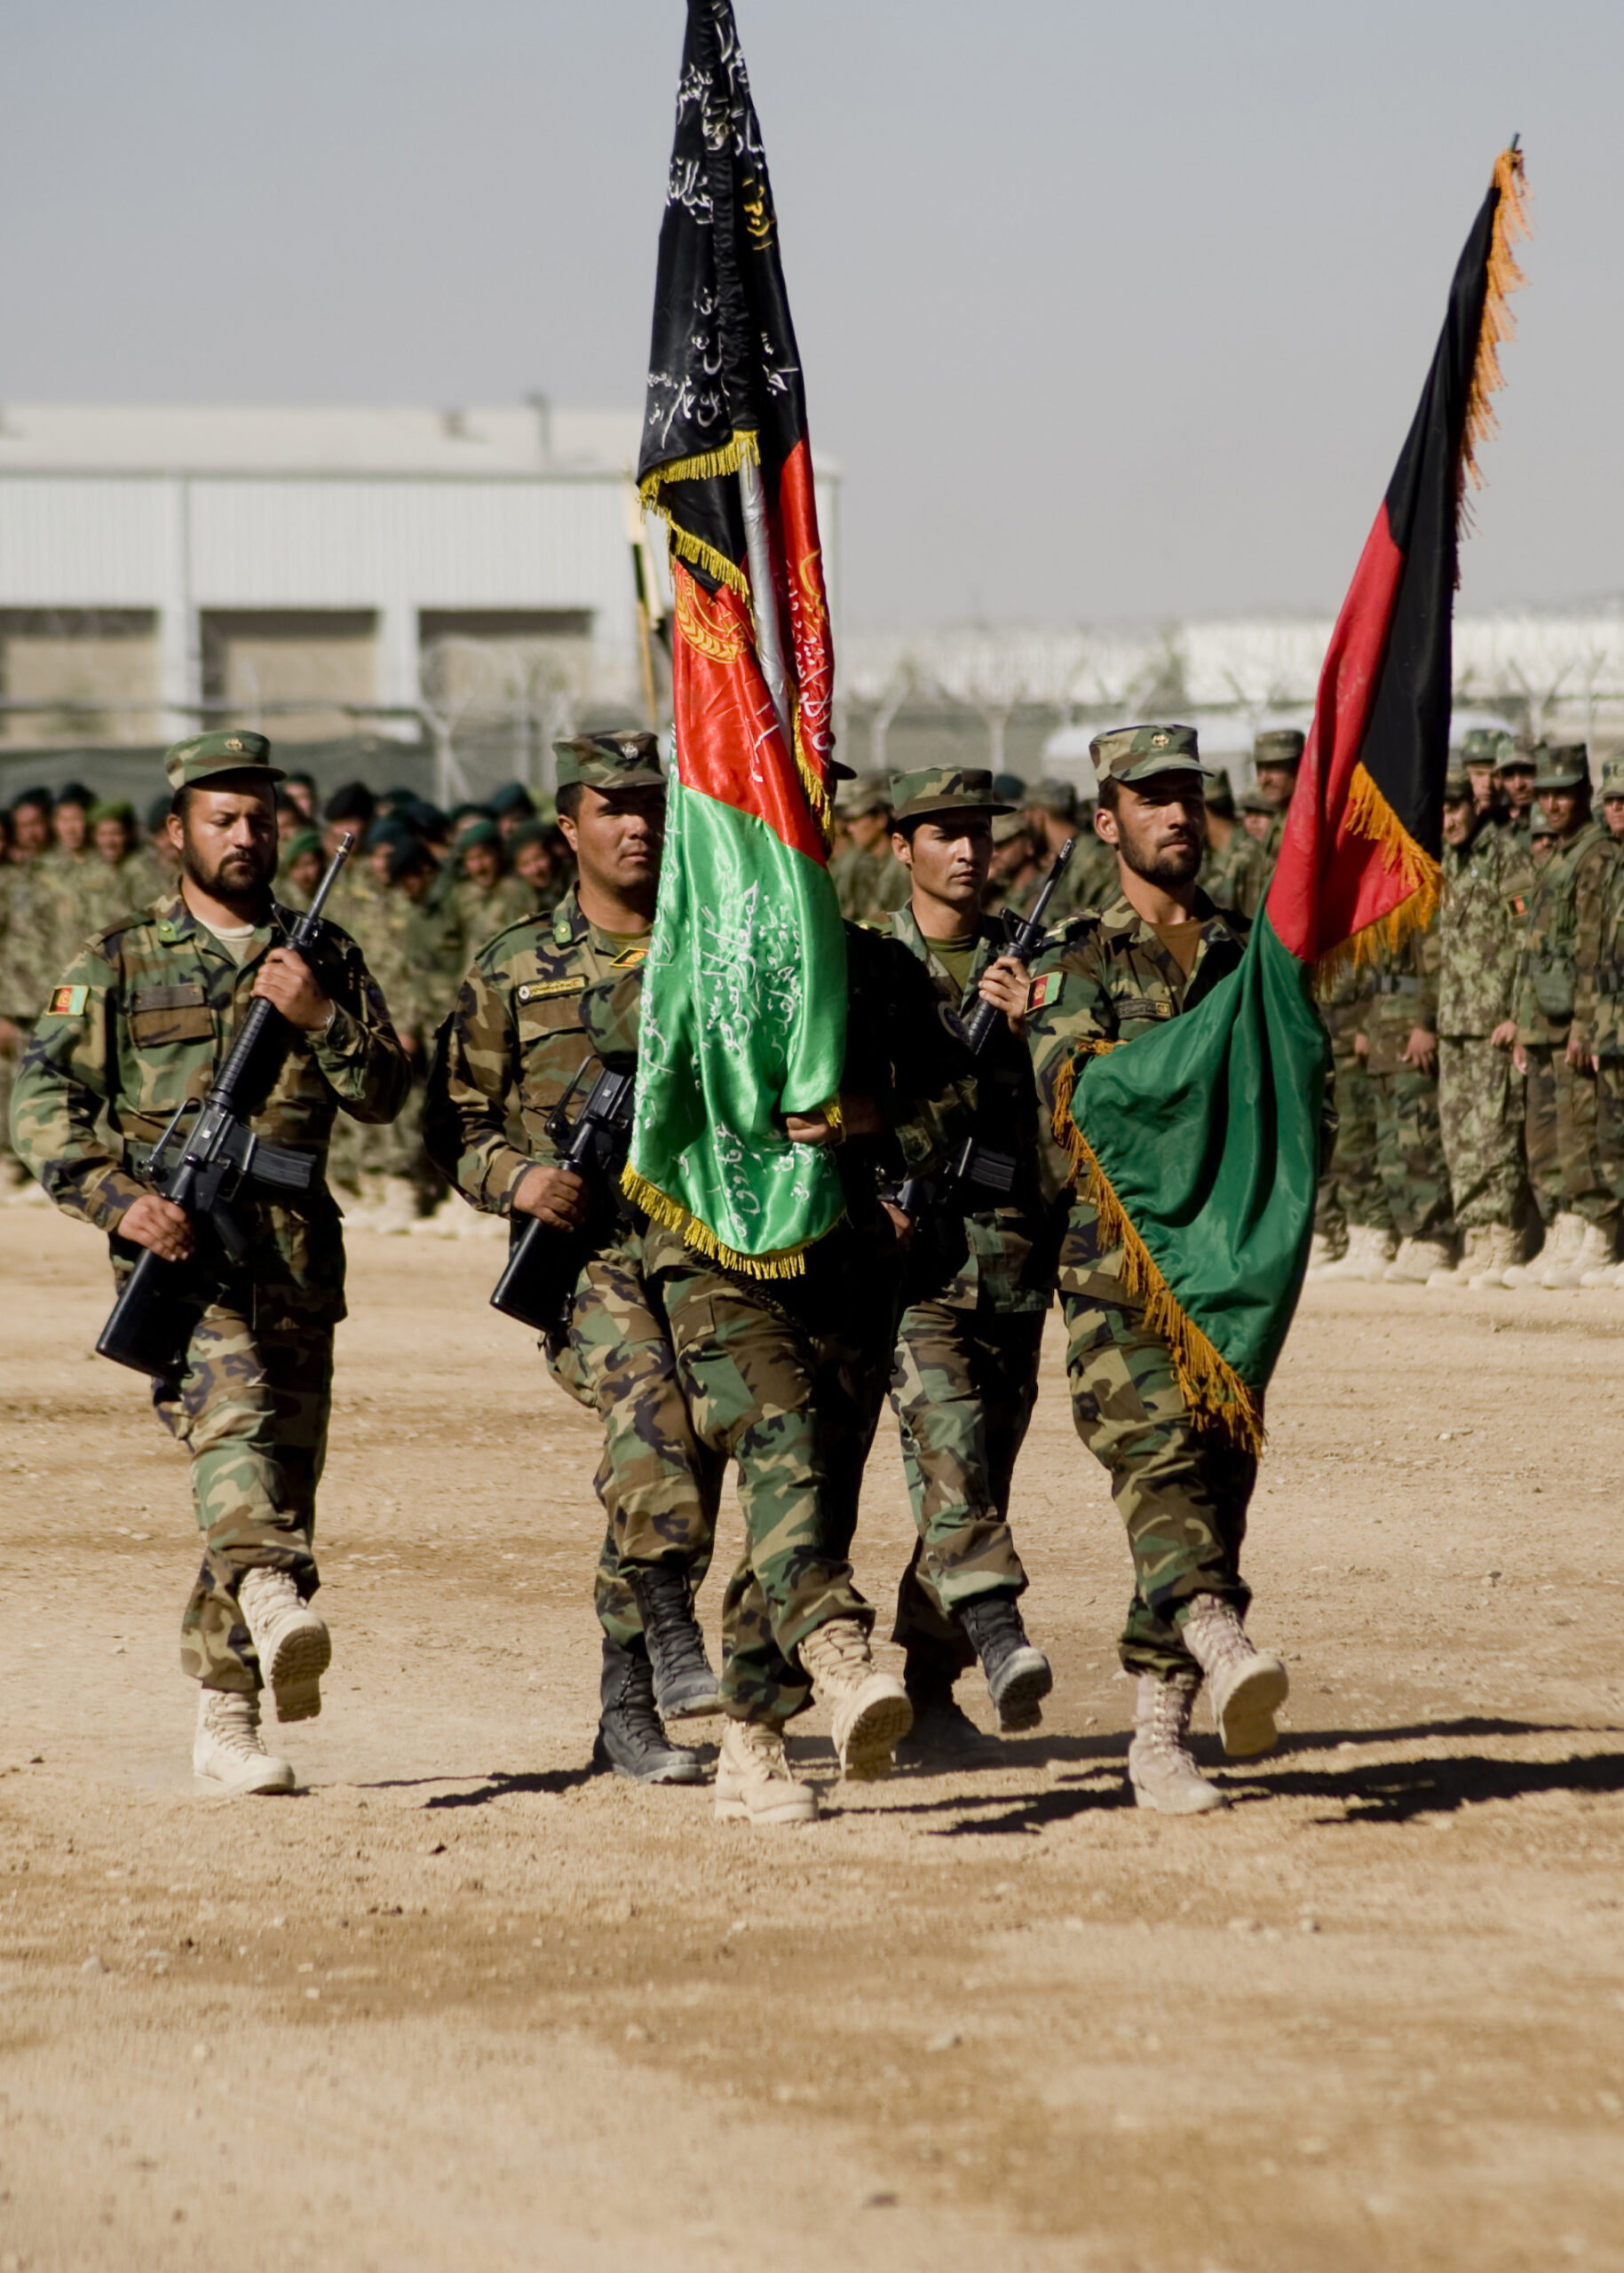 Afghanistan 2015: options for the international civil-military presence and transition process [WP1119]